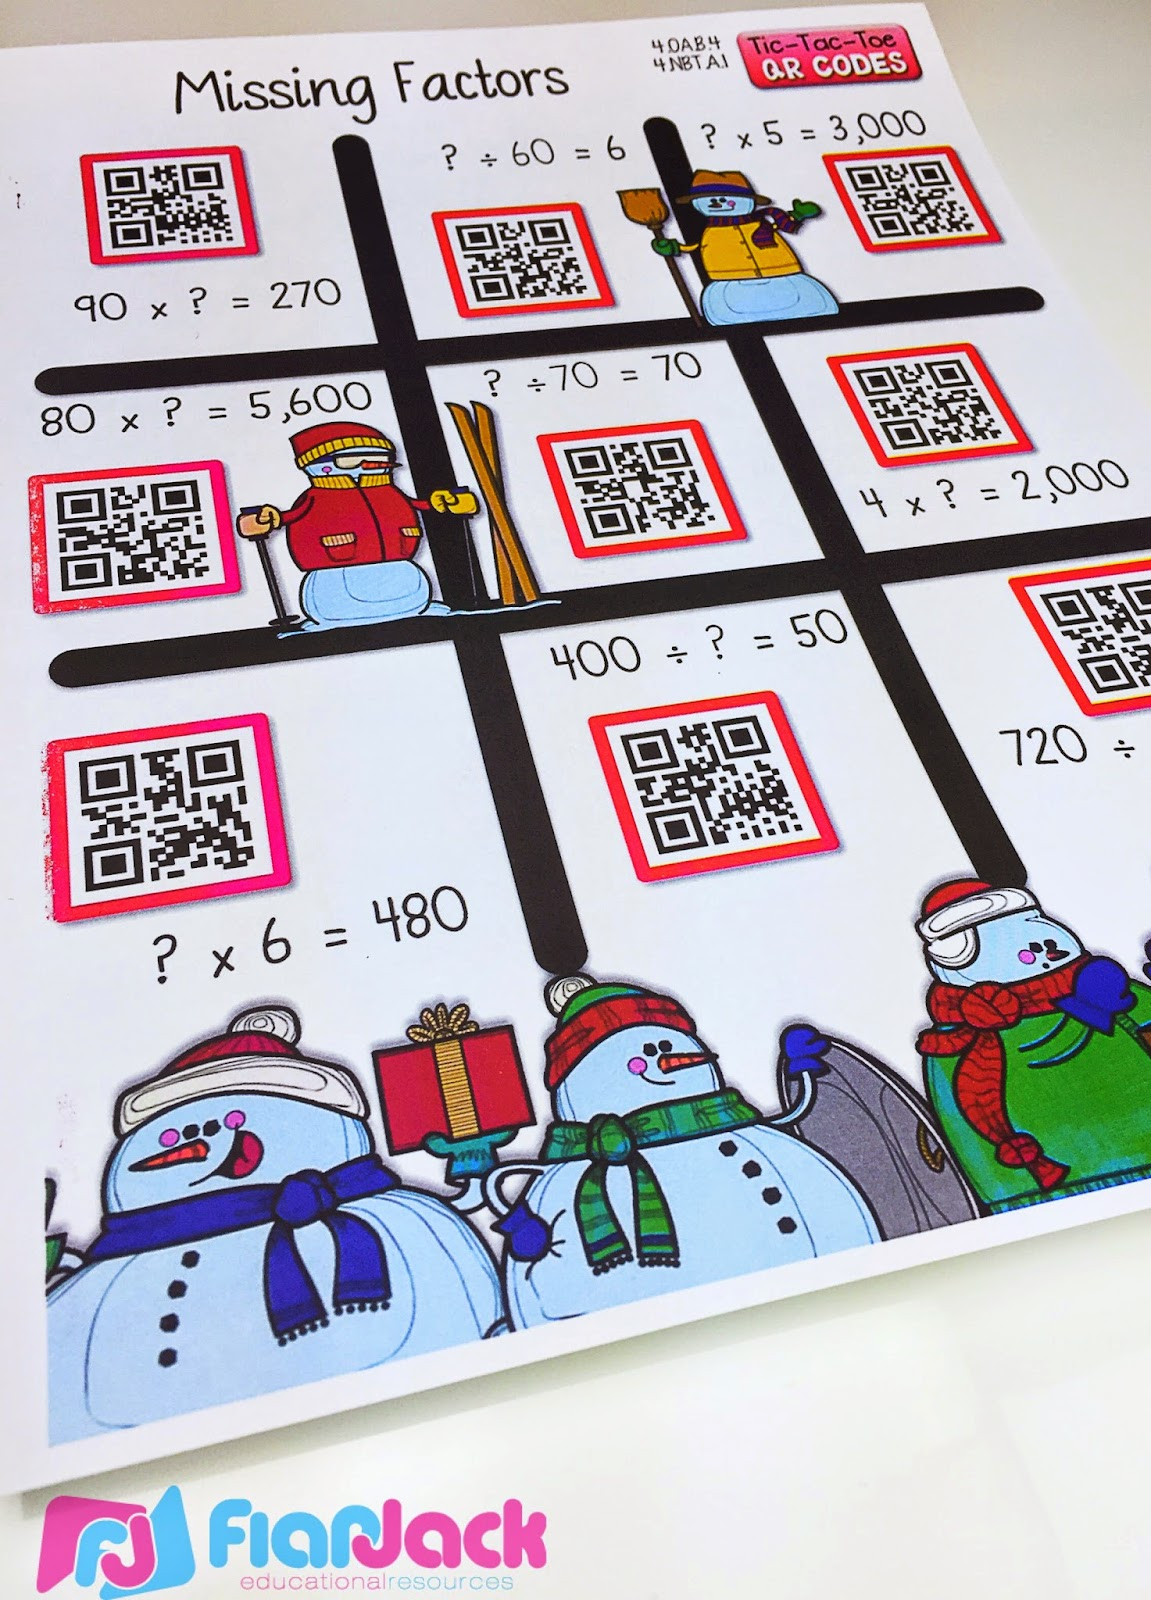 Flapjack Educational Resources Holiday Qr Code Printables Sample Freebie And Resource